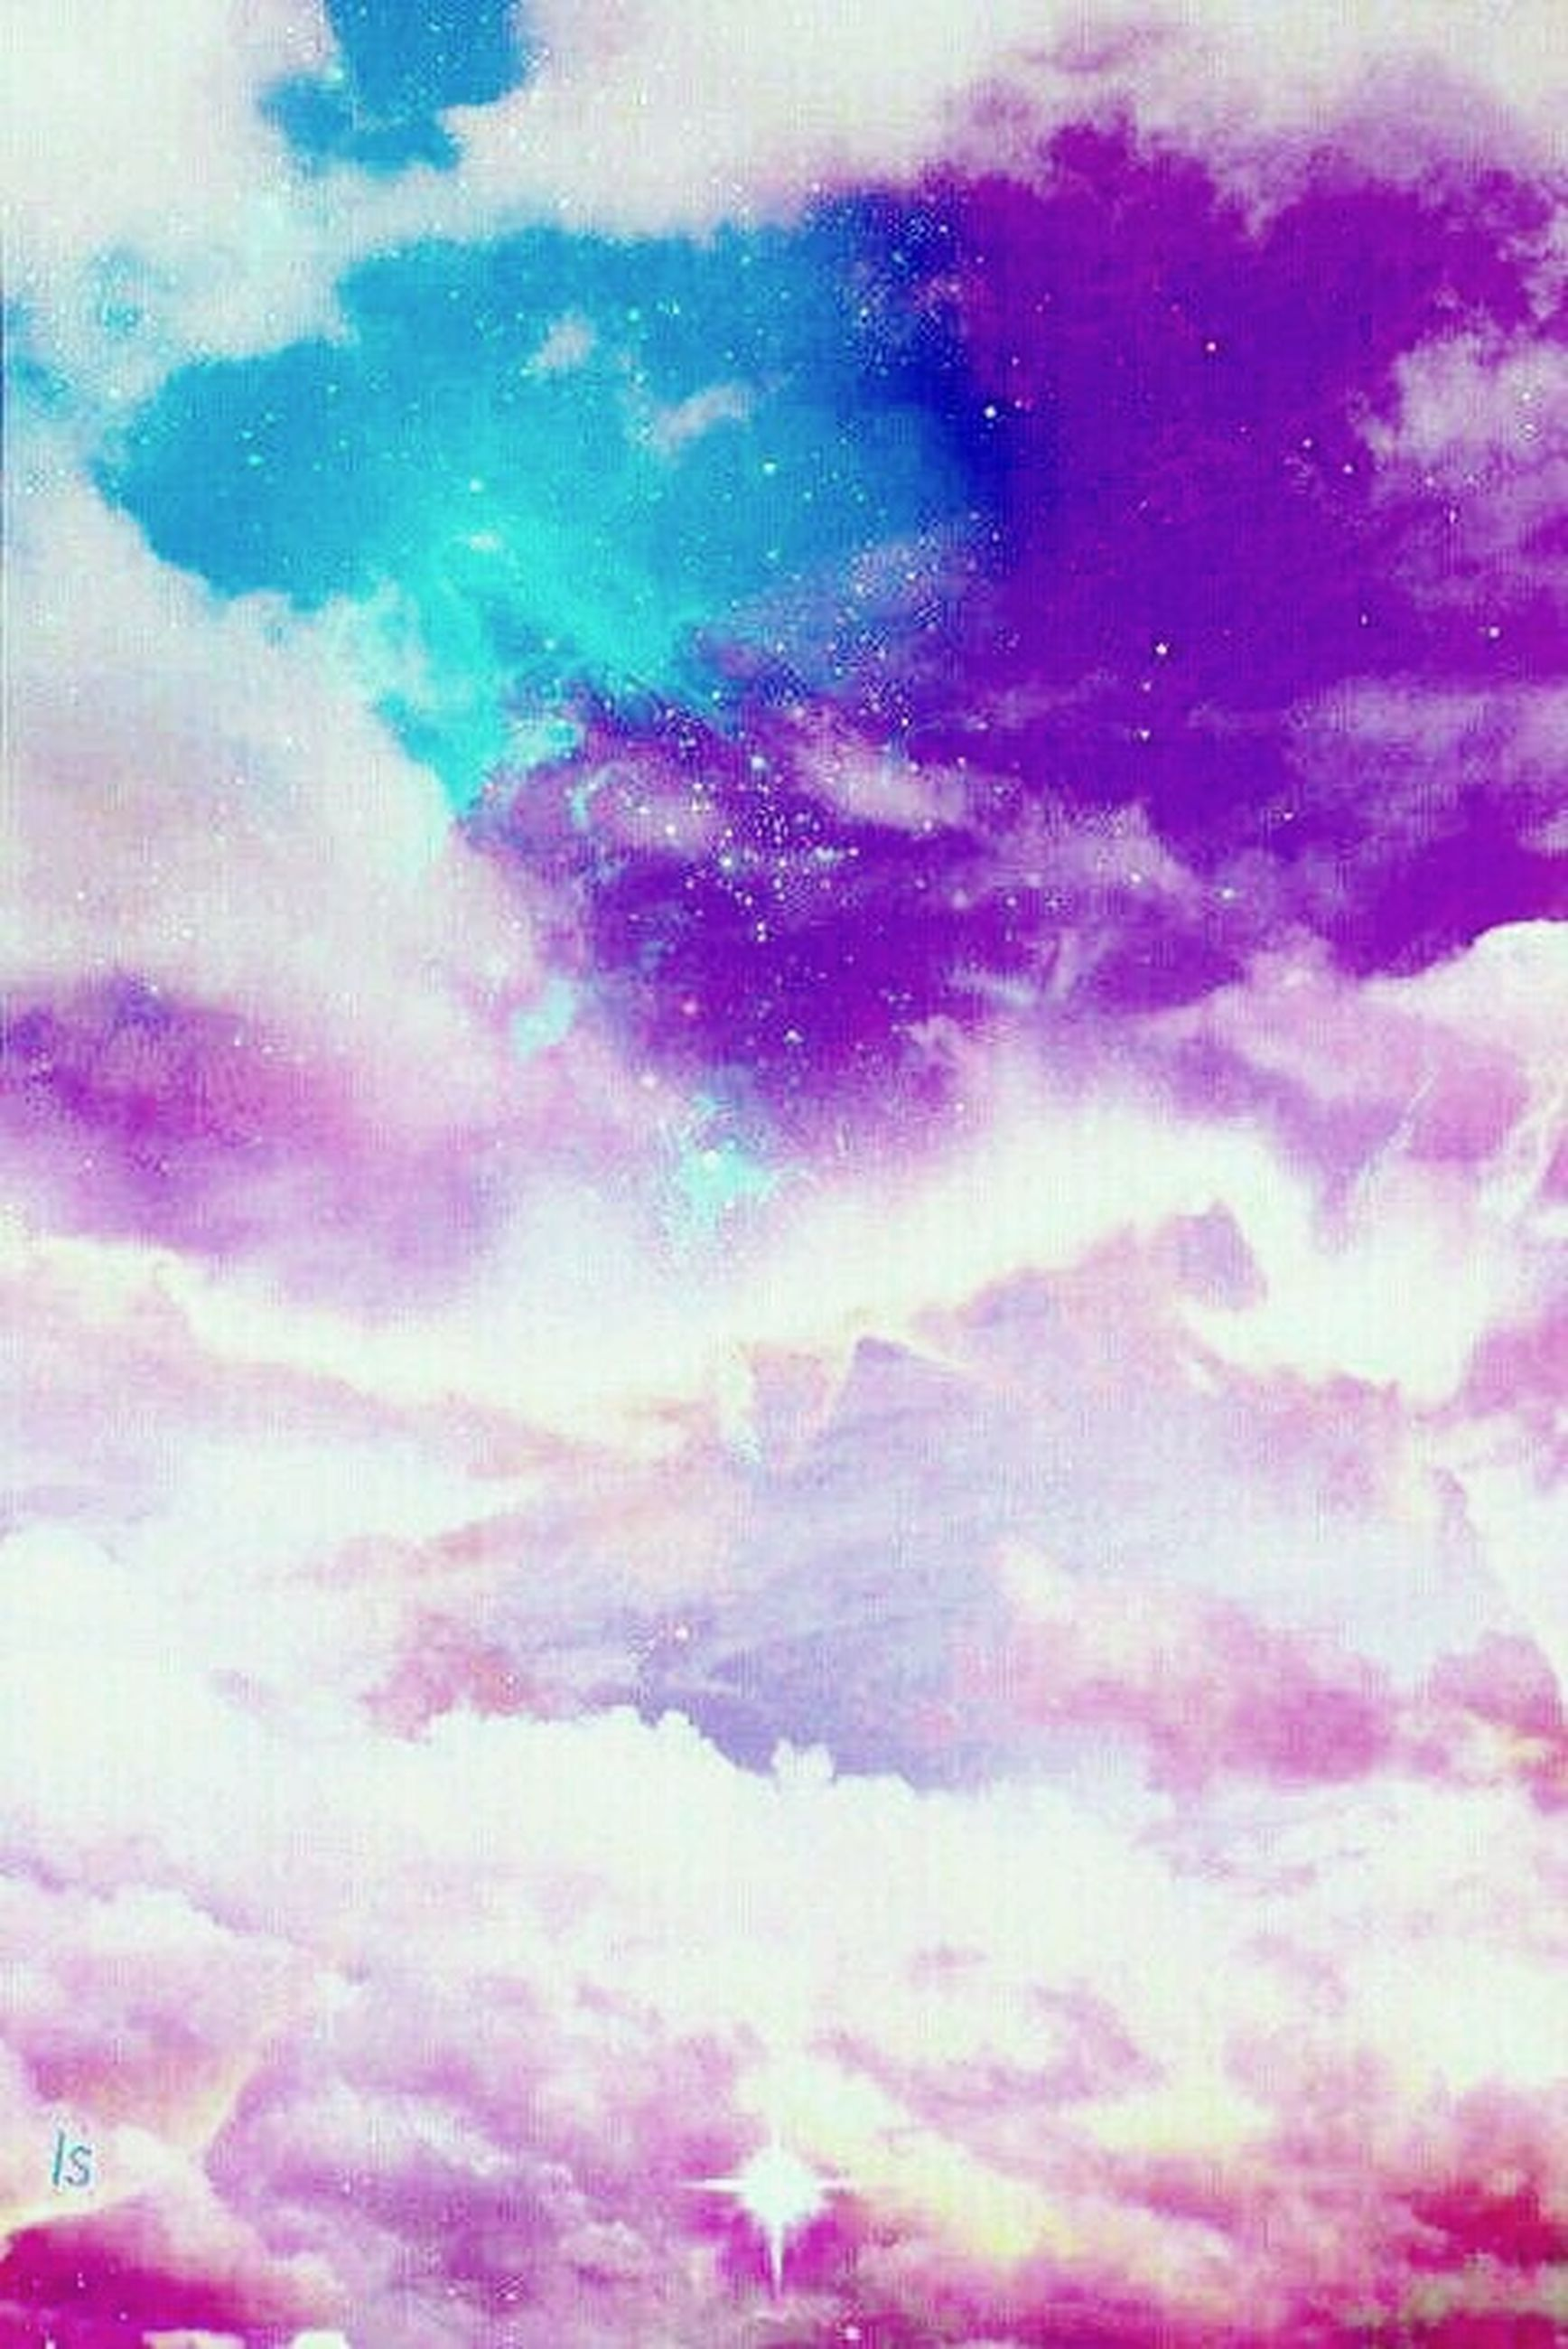 cloud - sky, sky, abstract, backgrounds, multi colored, no people, full frame, pink color, sky only, purple, nature, beauty in nature, low angle view, outdoors, watercolor painting, scenics, day